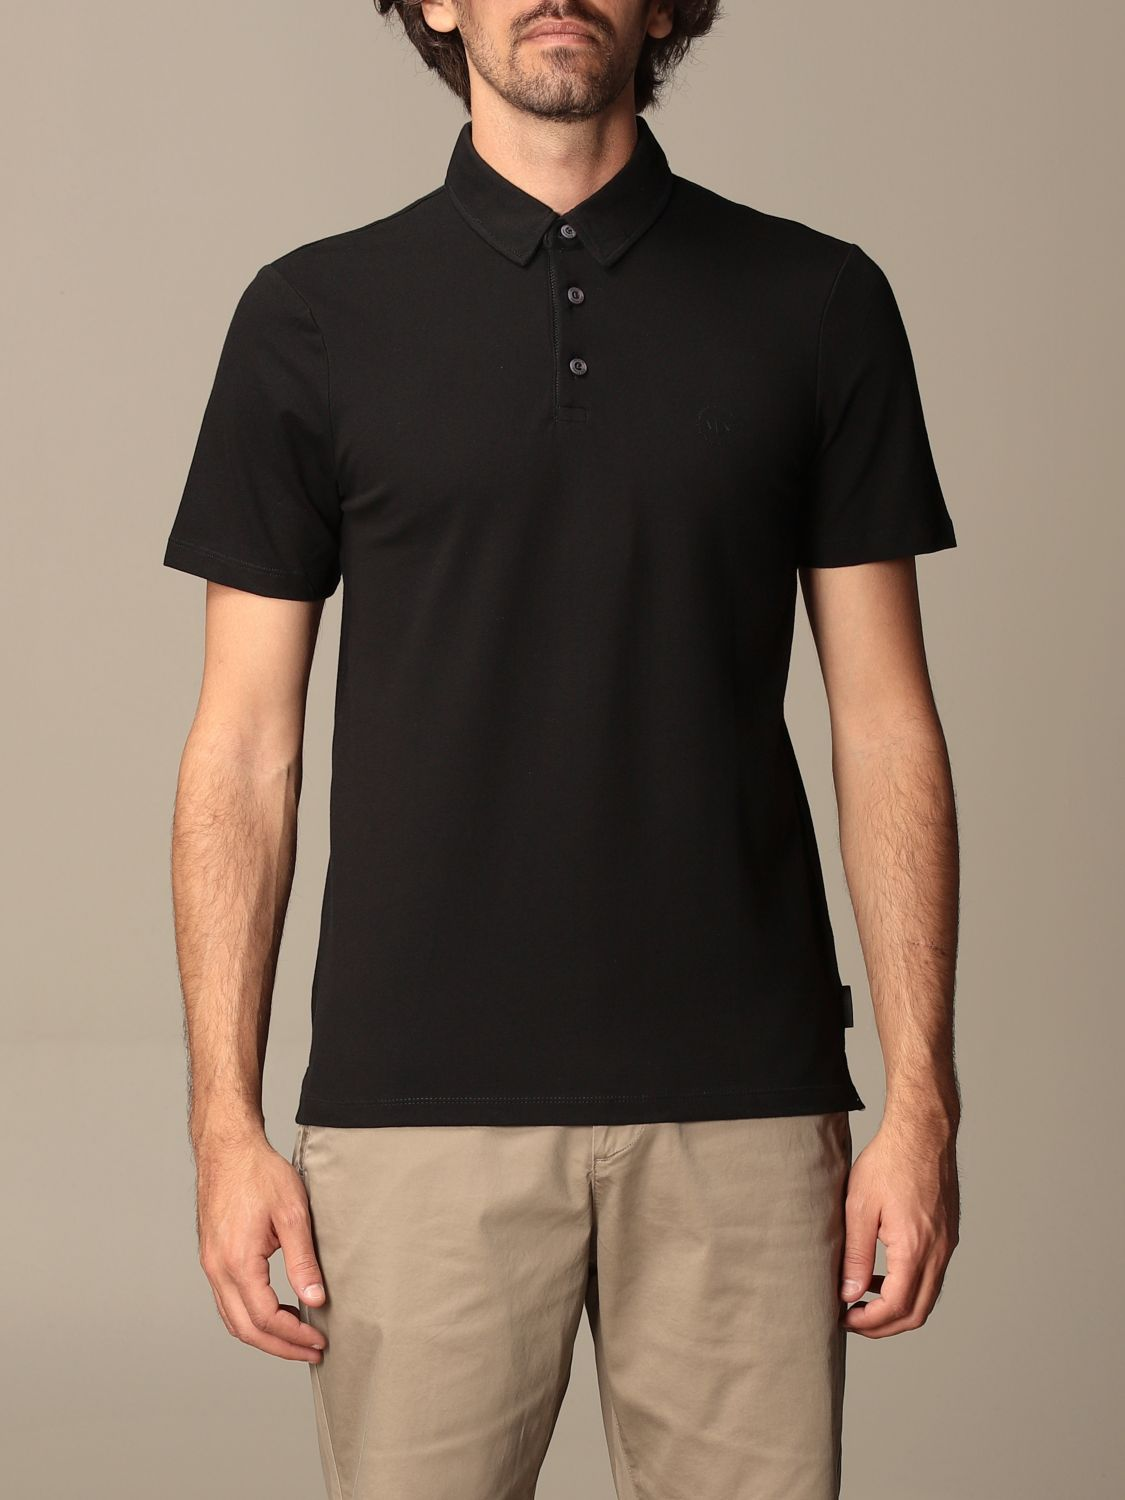 Polo shirt Armani Exchange: Polo shirt men Armani Exchange black 1